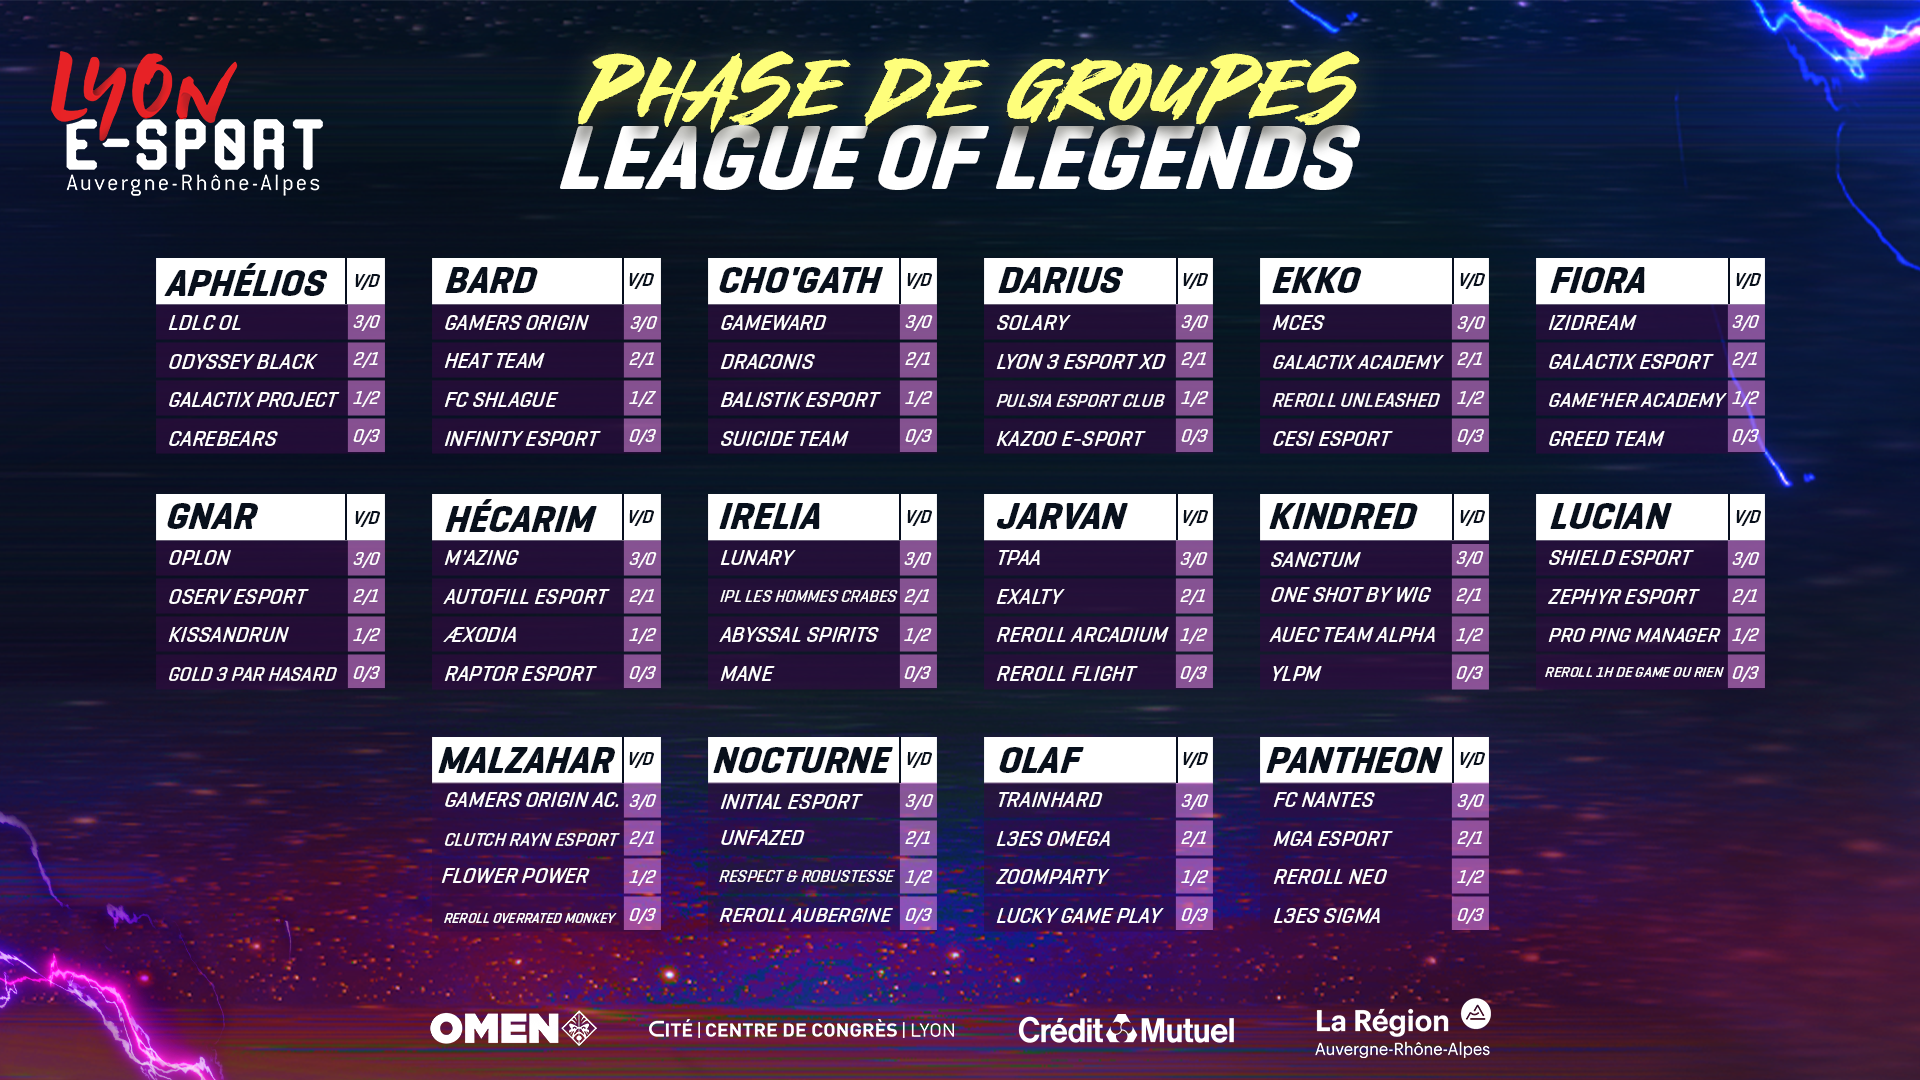 resultats-phases-groupes-lyon-esport-2020